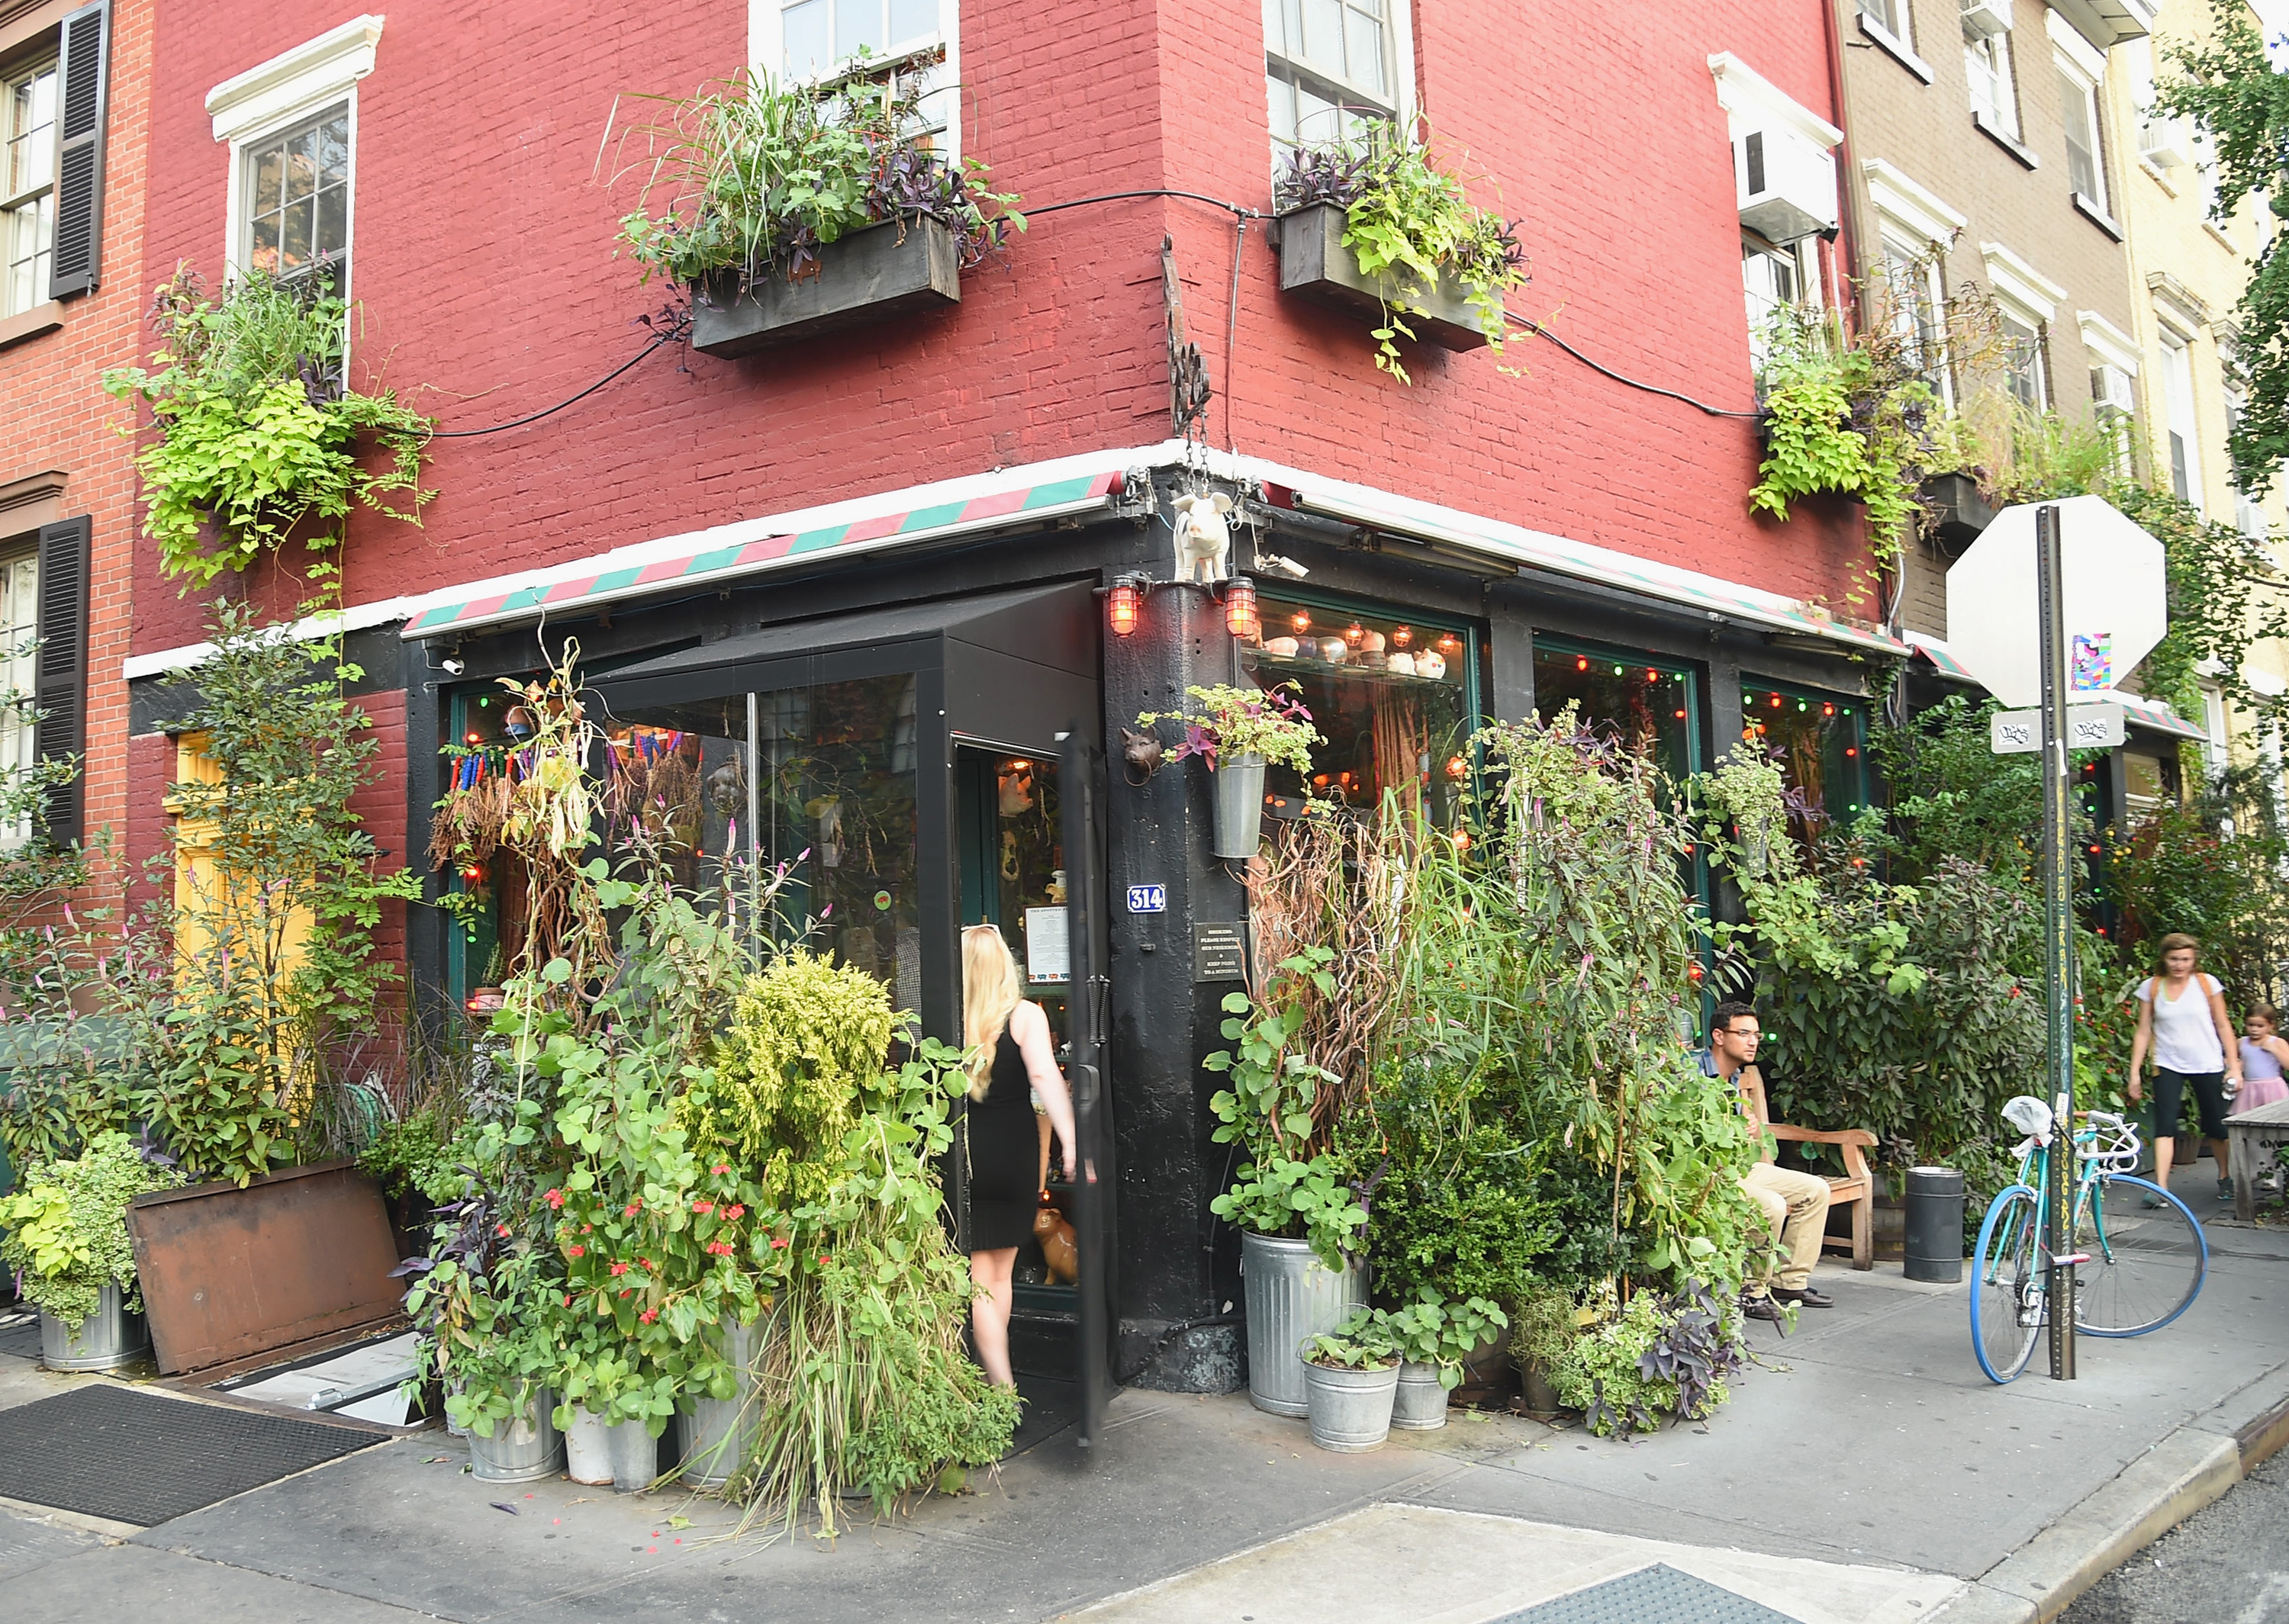 The exterior of the Spotted Pig, which is at a corner and is painted black, with lots of plants